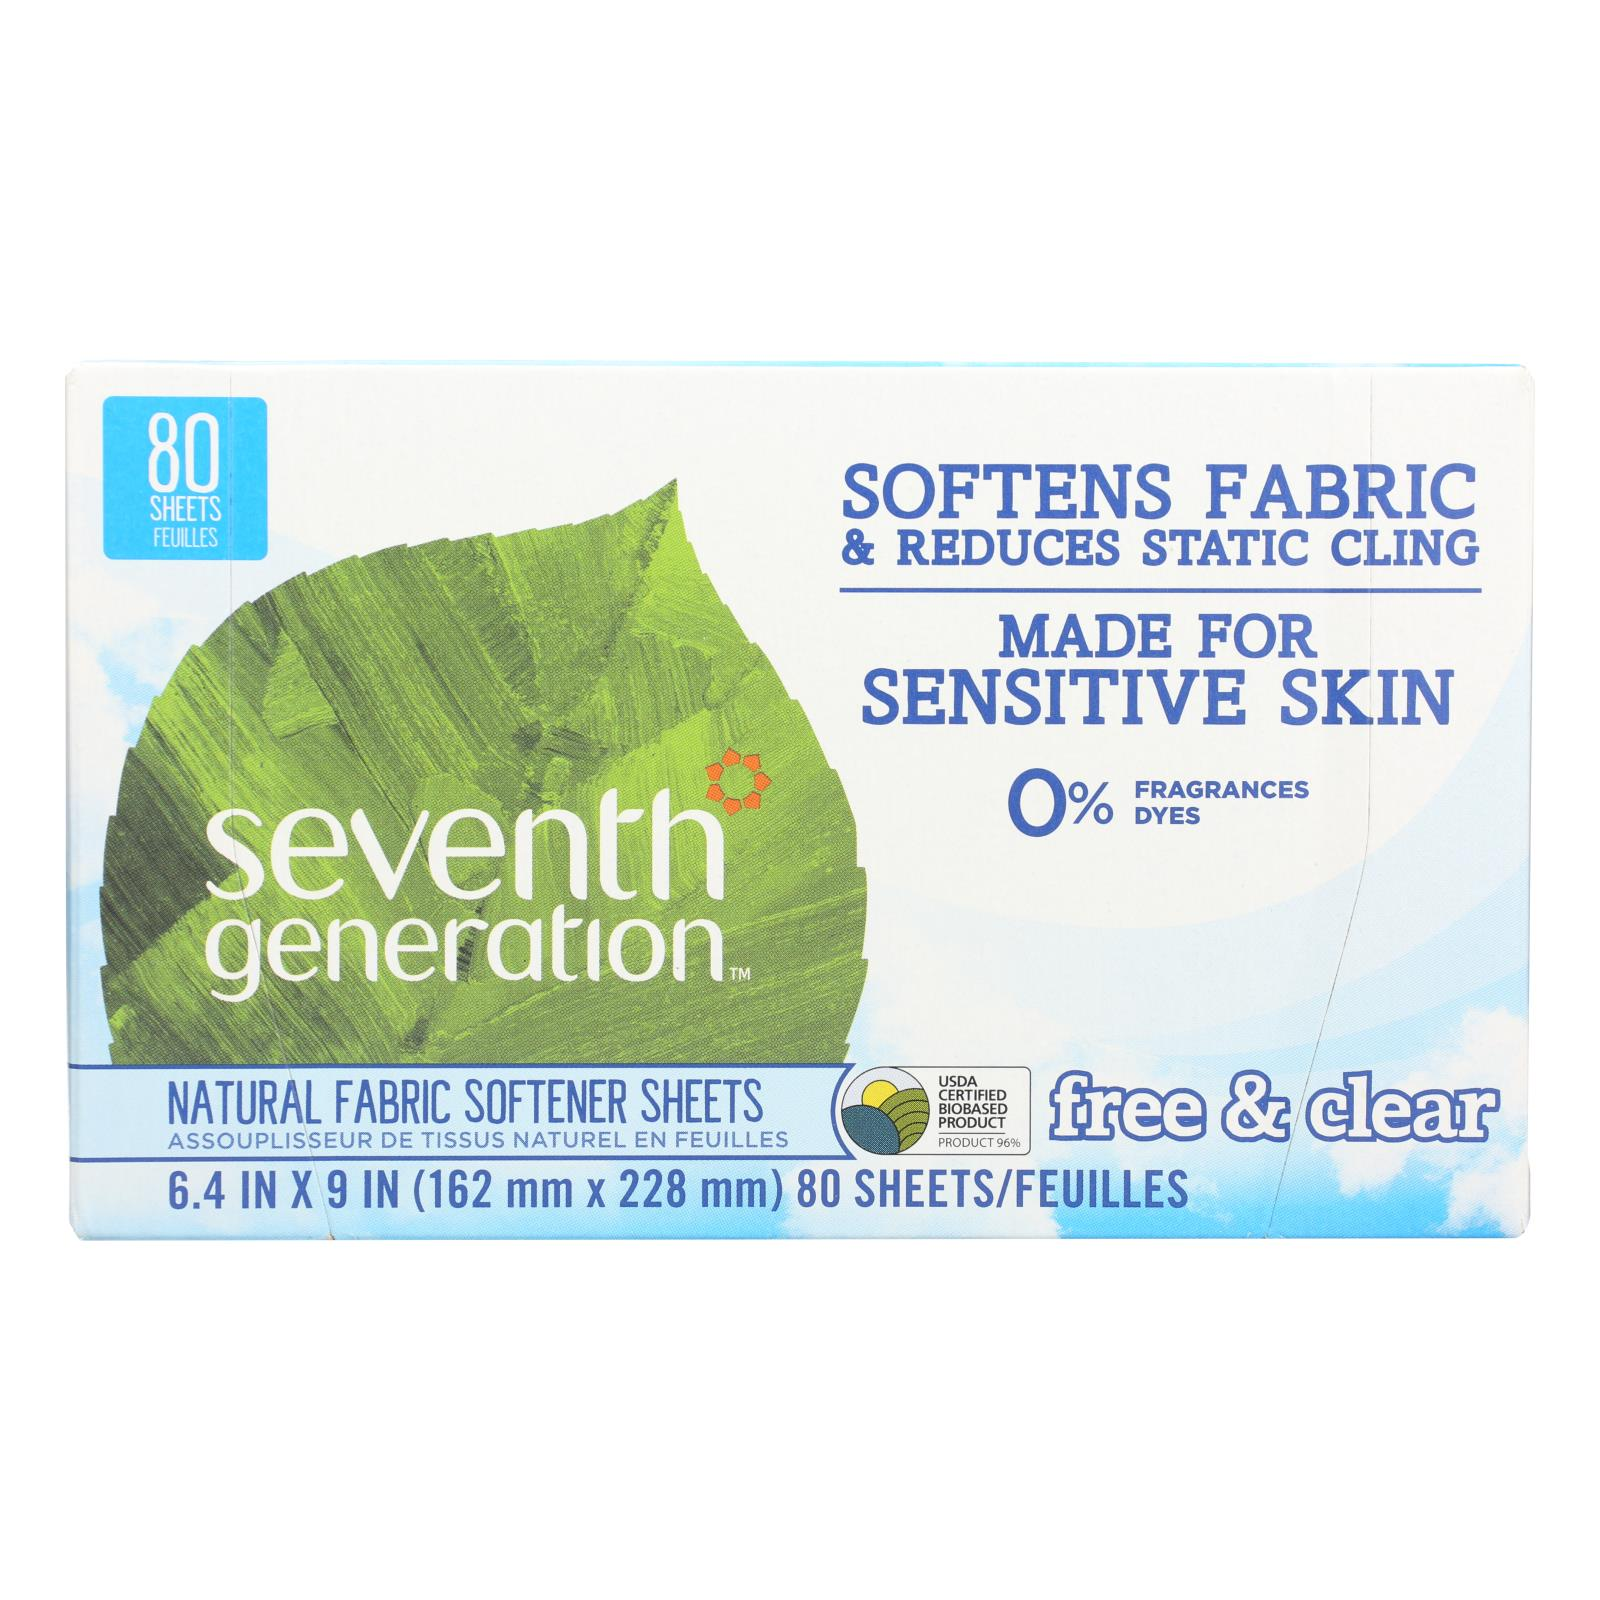 Seventh Generation Natural Fabric Softener Sheets - Free and Clear - Case of 12 - 80 Count